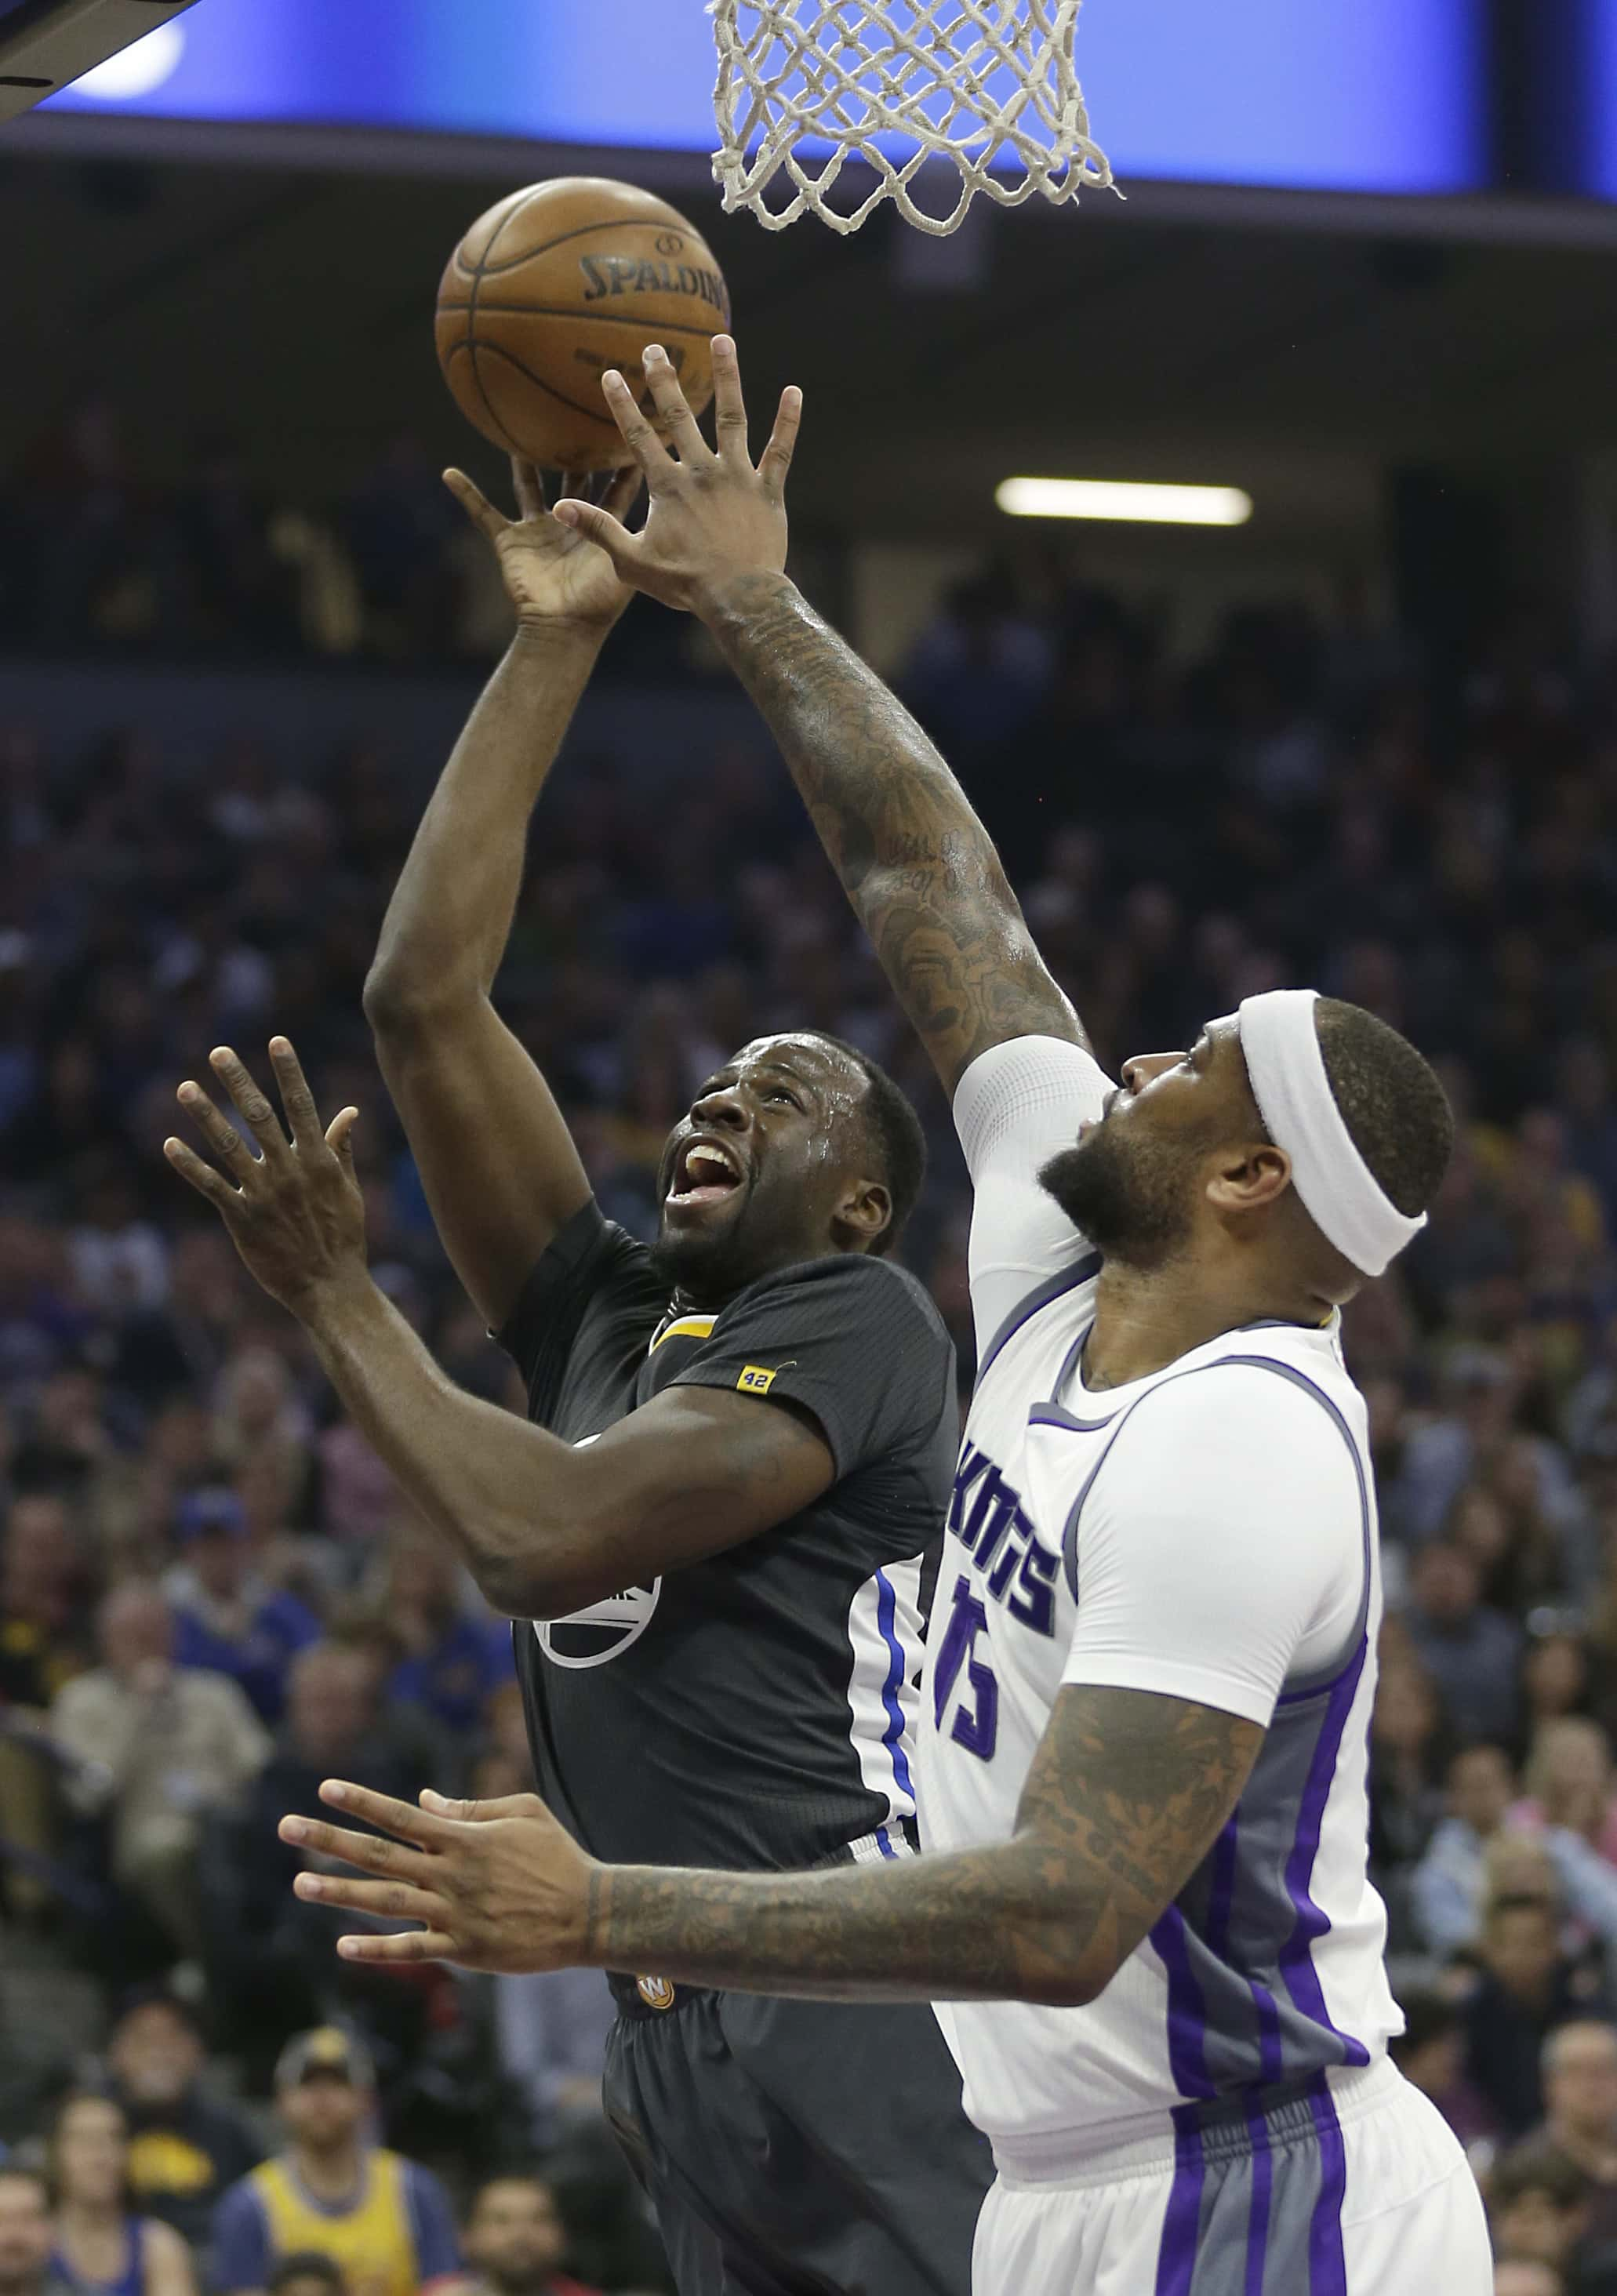 Golden State Warriors forward Draymond Green, left, goes to the basket against Sacramento Kings forward DeMarcus Cousins during the first half of an NBA basketball game Saturday, Feb. 4, 2017, in Sacramento, Calif. (AP Photo/Rich Pedroncelli)